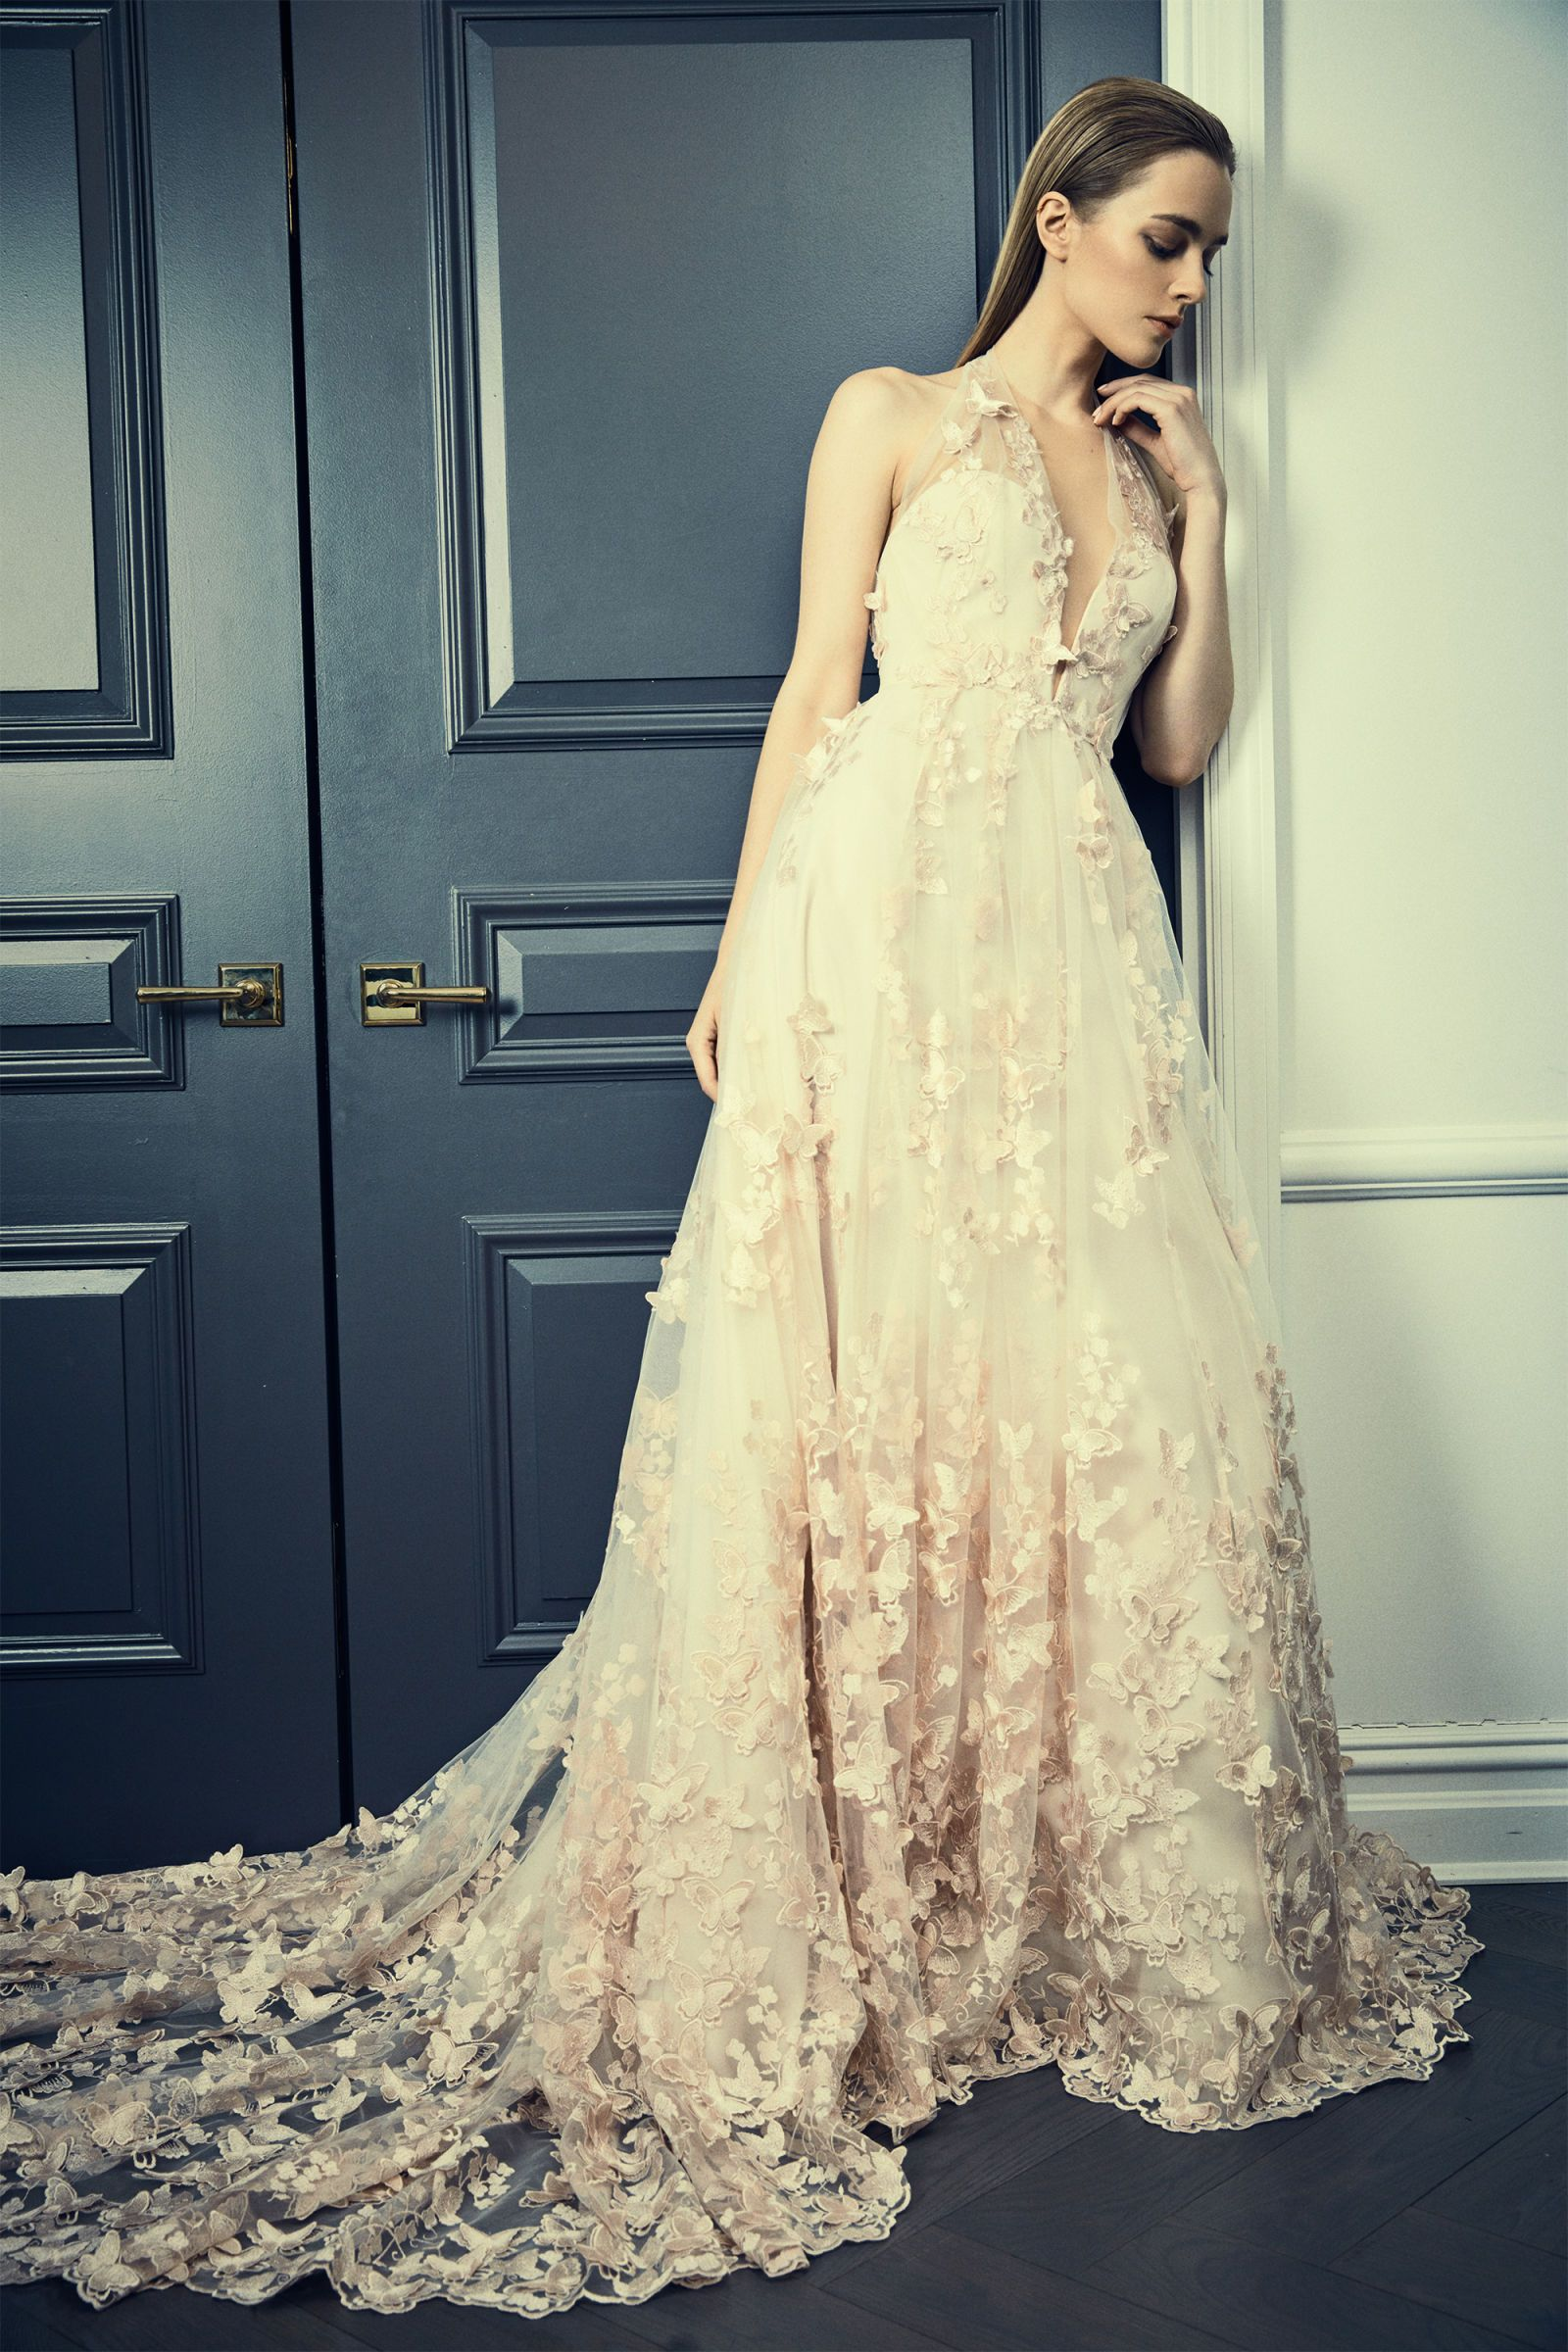 Best of Bridal Fashion Week: 25 Wedding Gowns From Marchesa, Vera Wang, andMore Best of Bridal Fashion Week: 25 Wedding Gowns From Marchesa, Vera Wang, andMore new picture